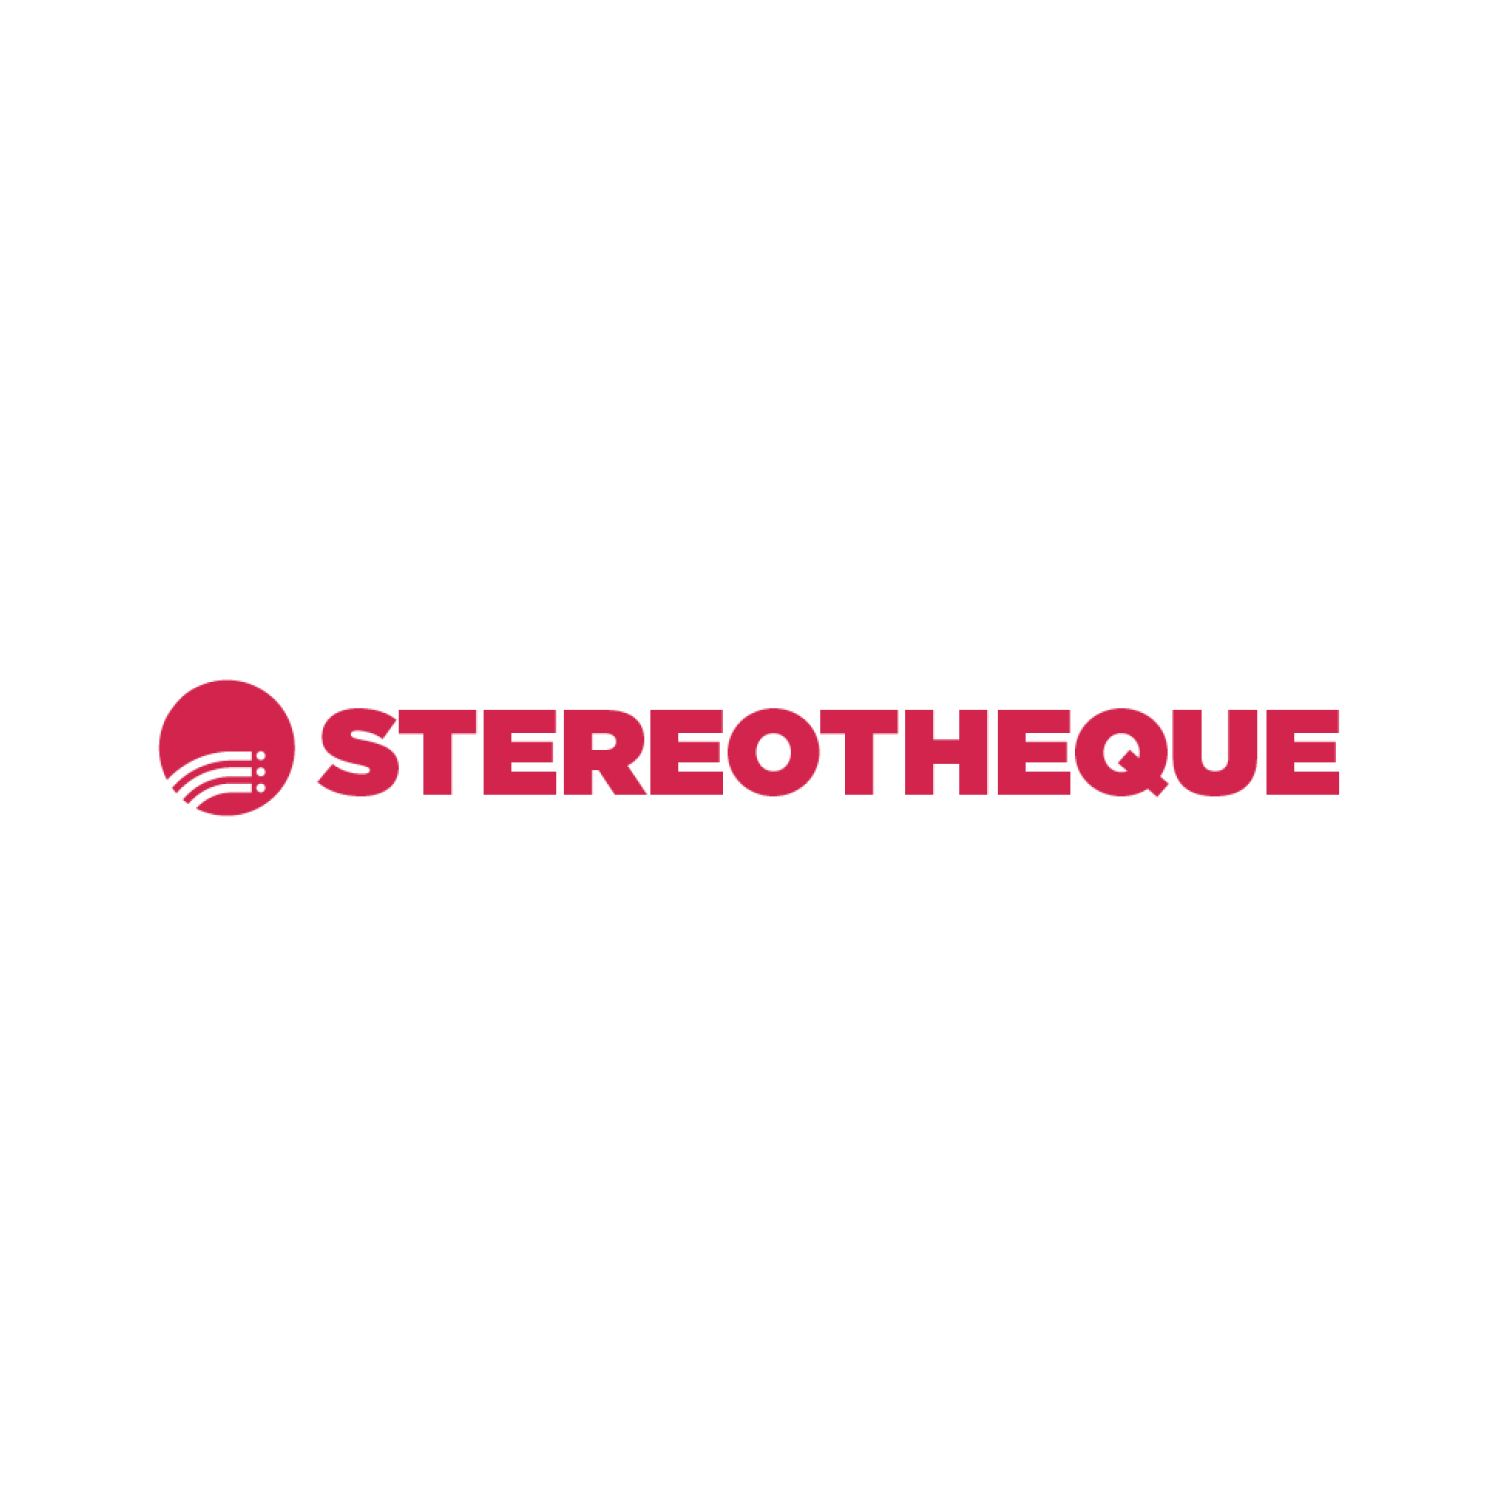 Stereotheque